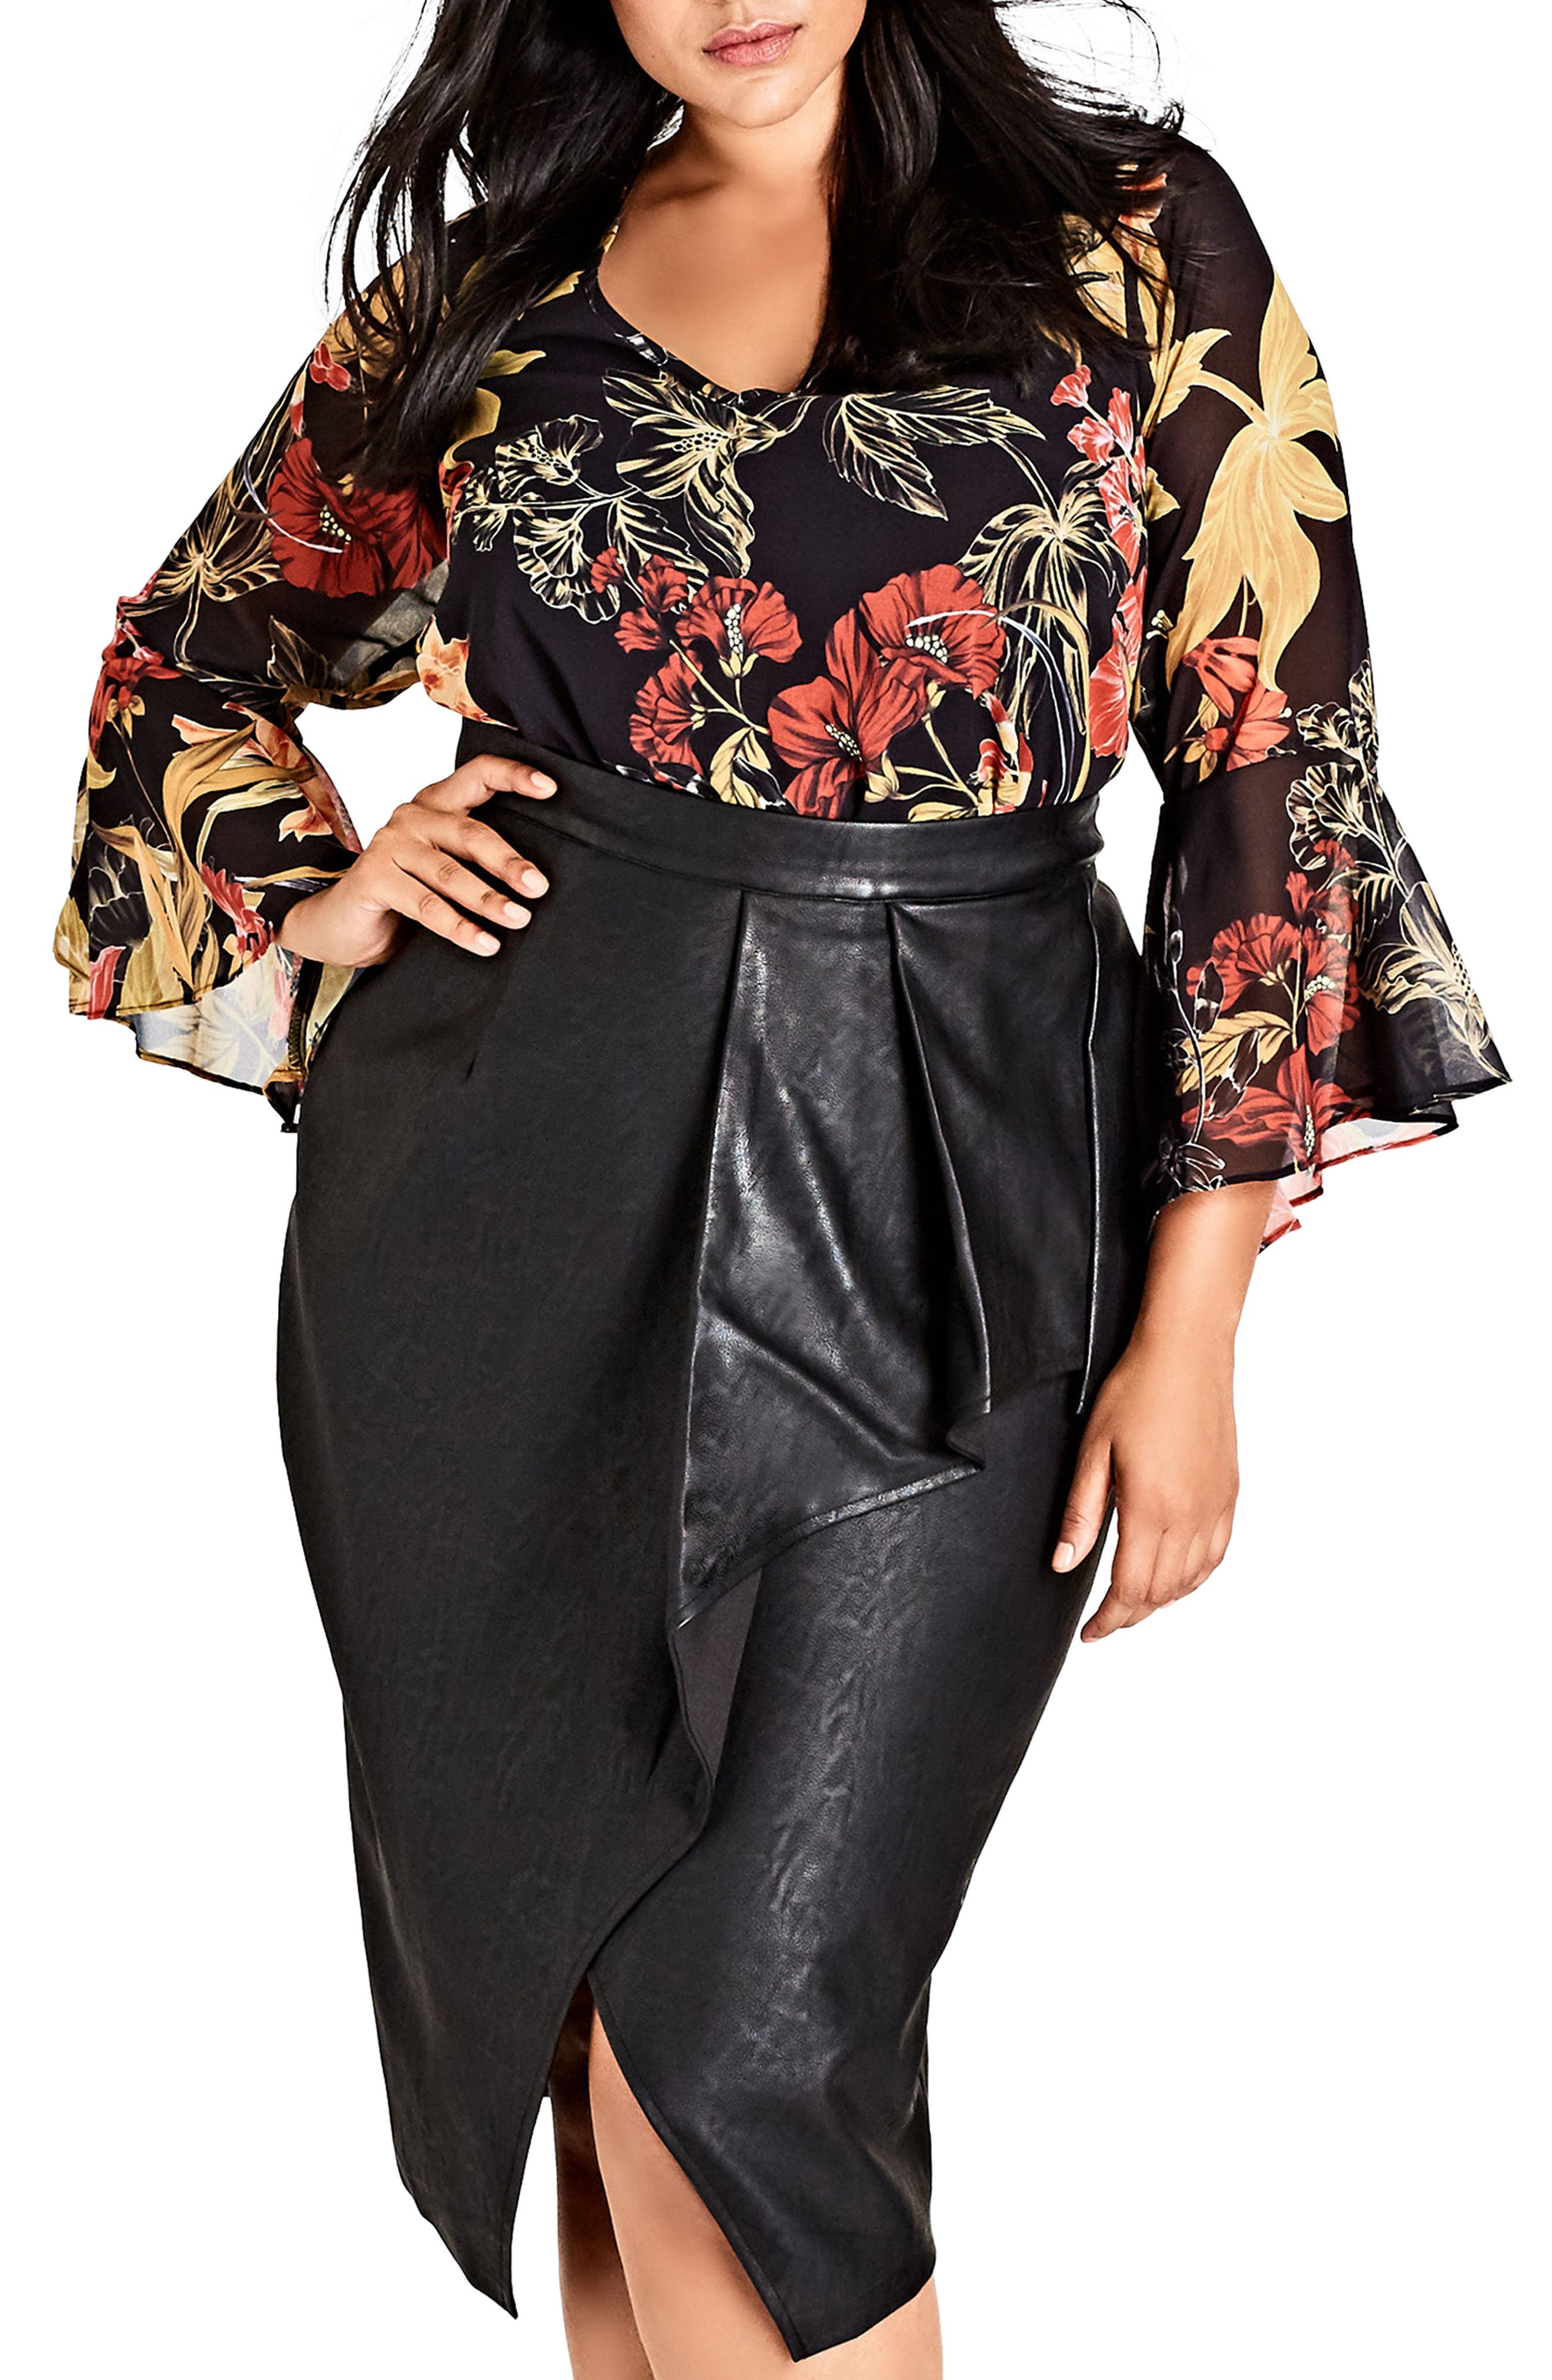 Main Image - City Chic Gold Floral Bell Sleeve Blouse (Plus Size)